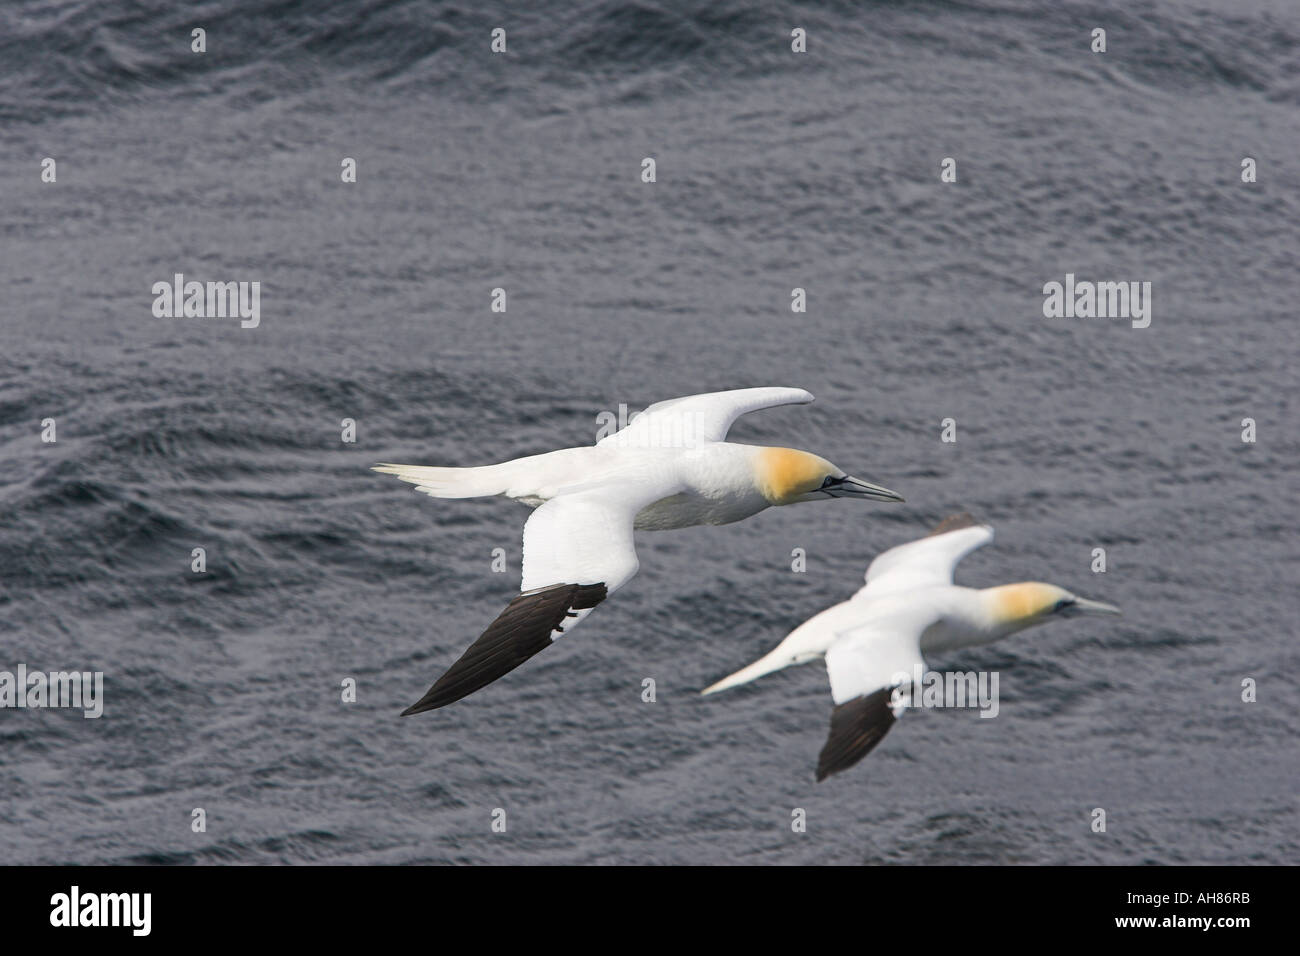 a pair of gannets flying - Stock Image